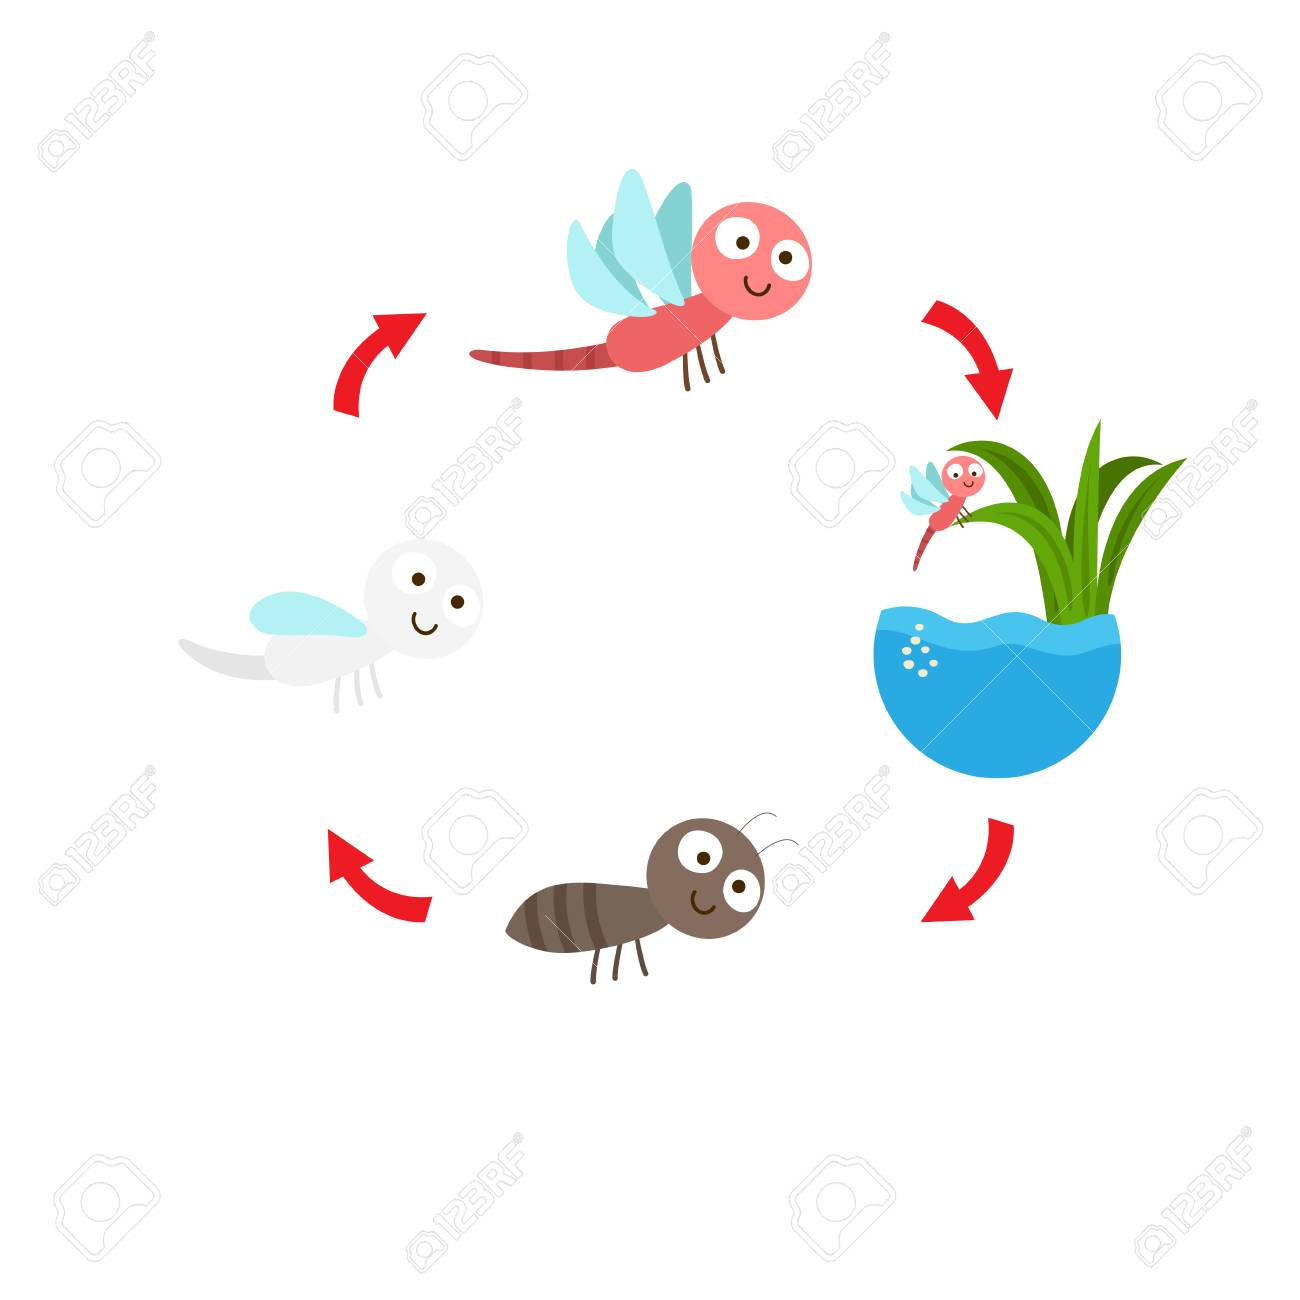 Illustration Of Dragonfly Life Cycle Royalty Free Cliparts Vectors And Stock Illustration Image 98261672